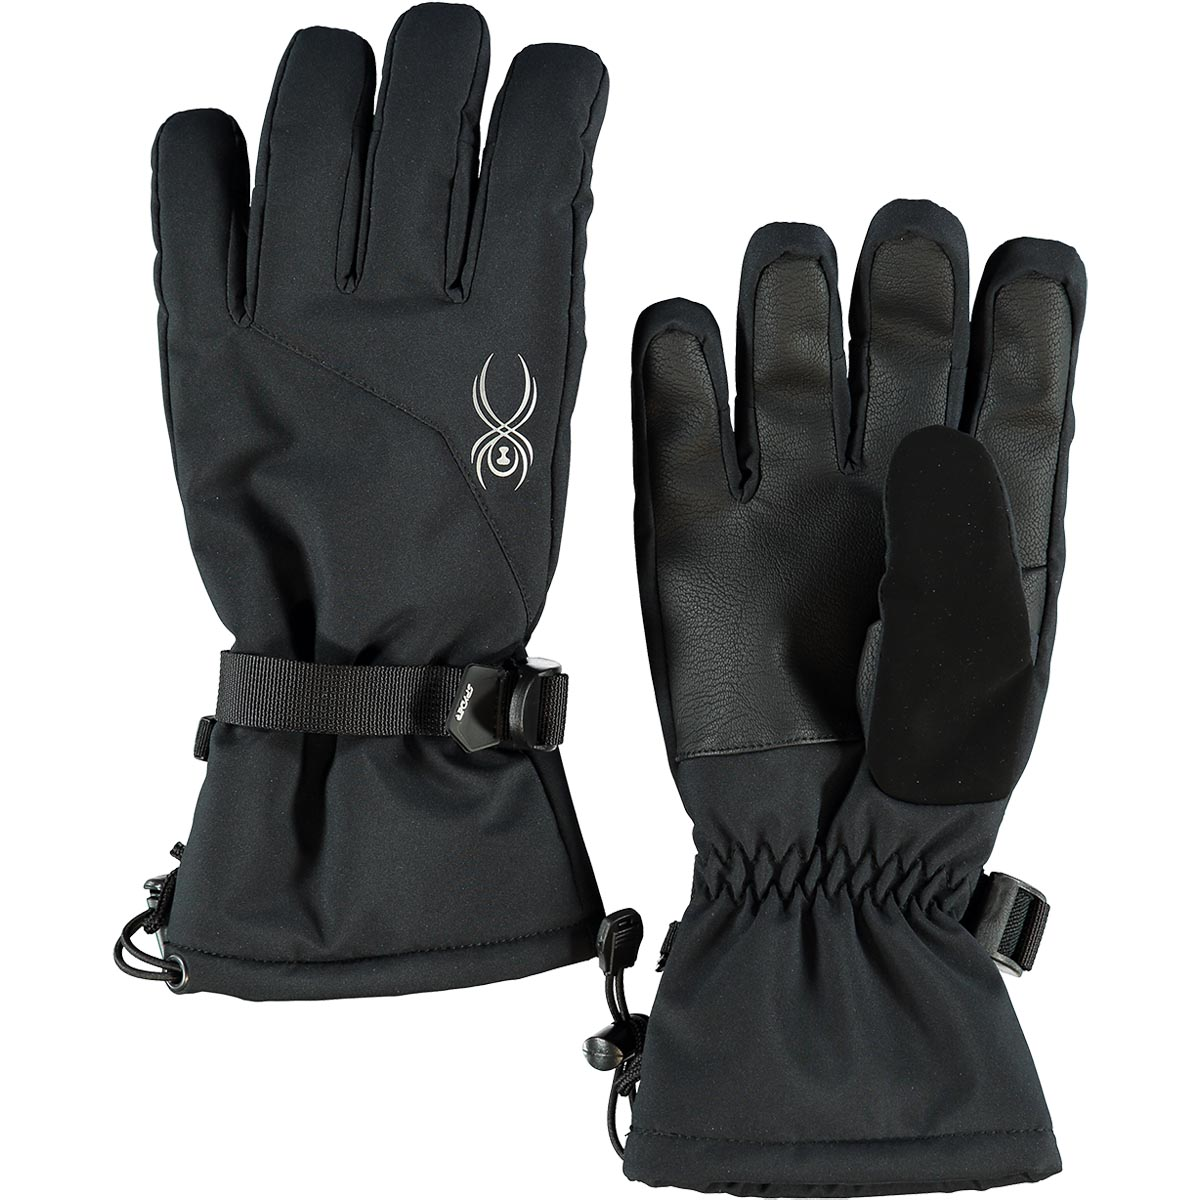 Spyder Women's Essential Ski Glove